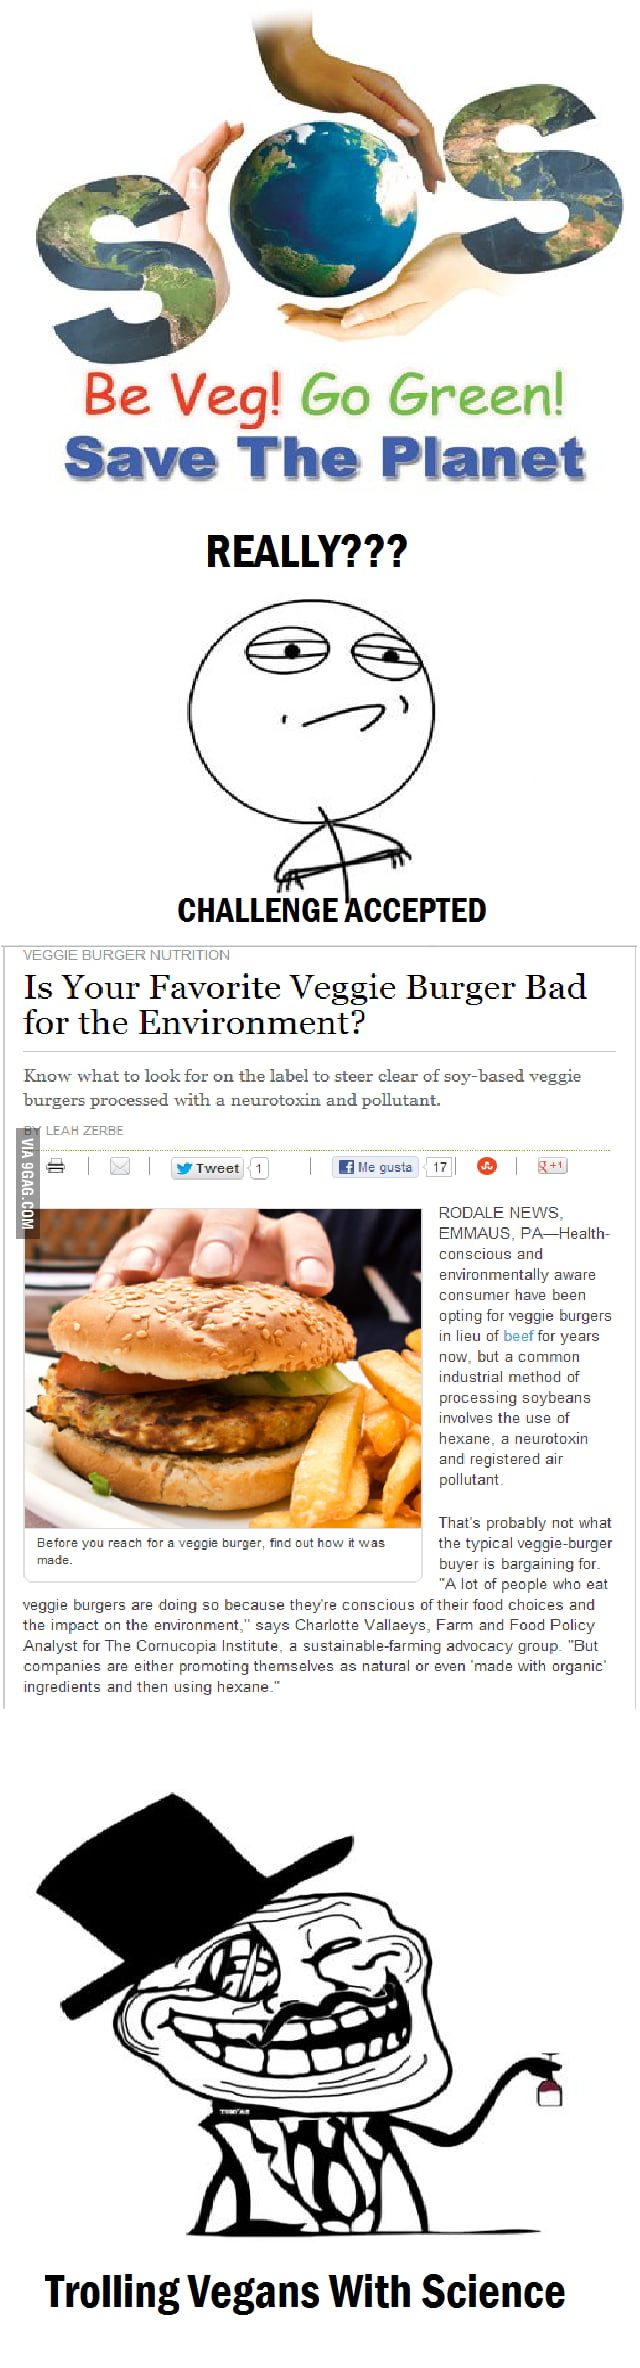 Trolling Vegans with Science